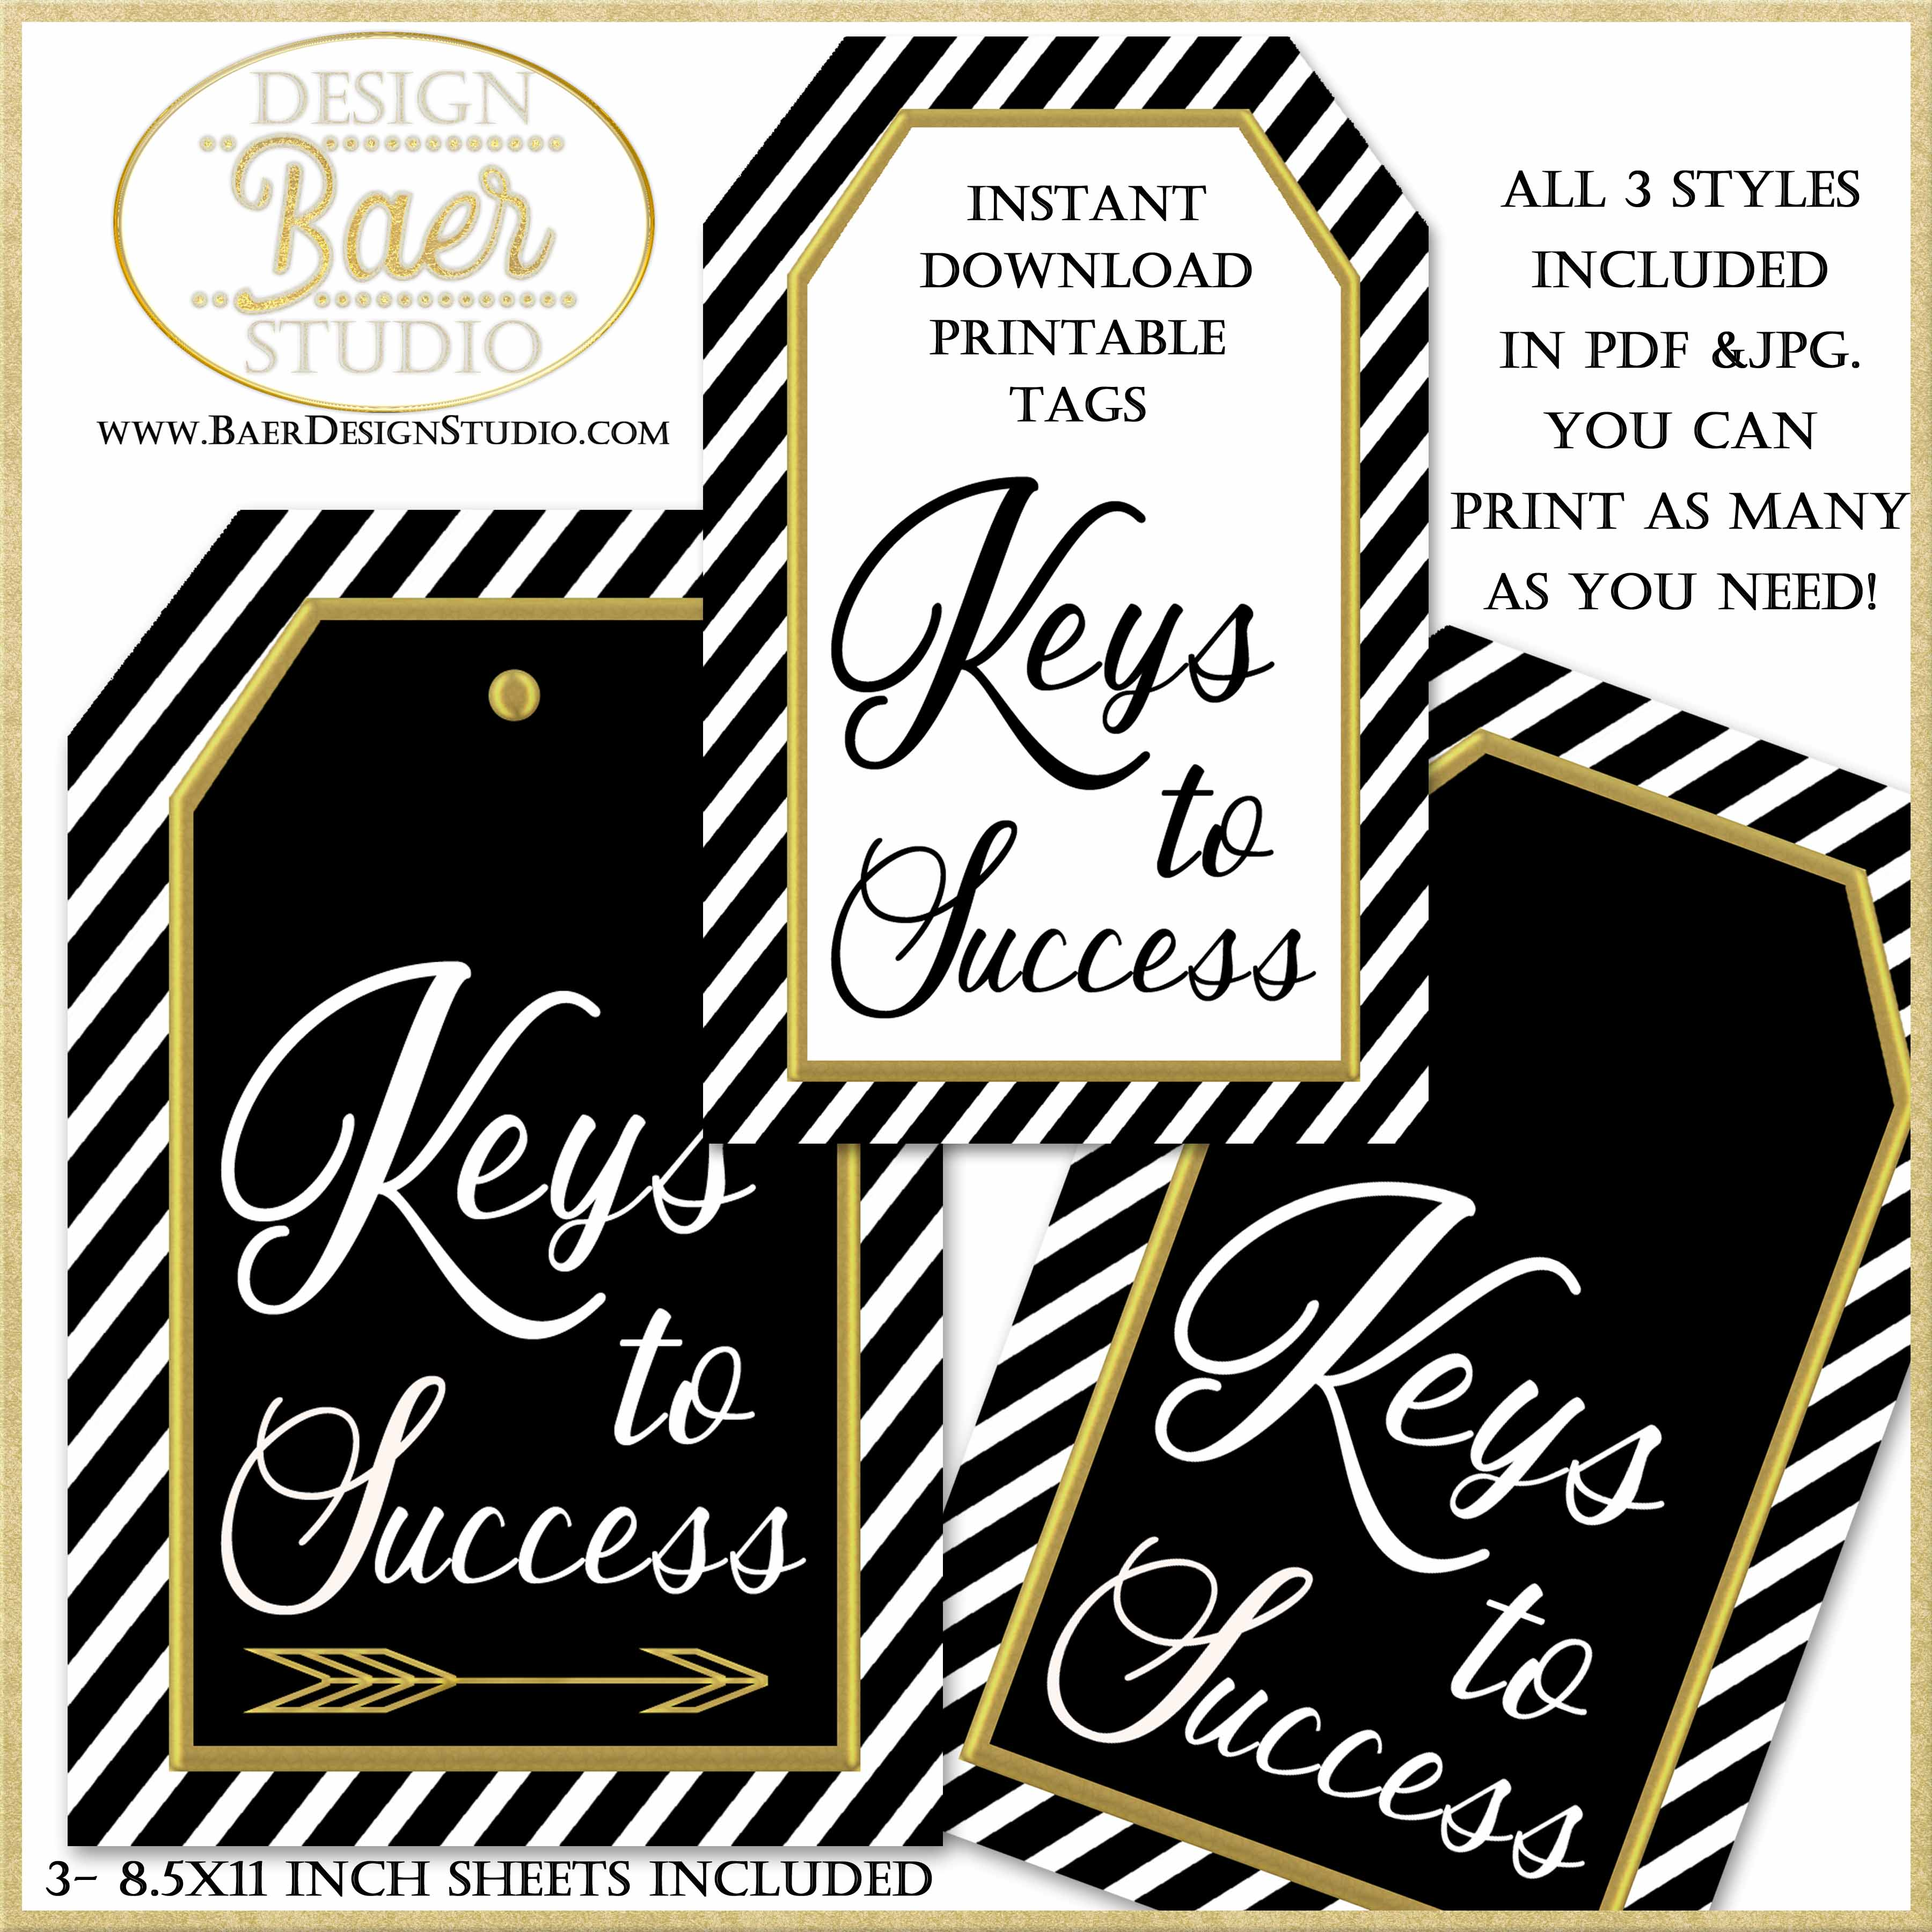 image regarding Printable Keys named Keys in direction of Good results for Commencement Occasion Show, Printable Tags Baer